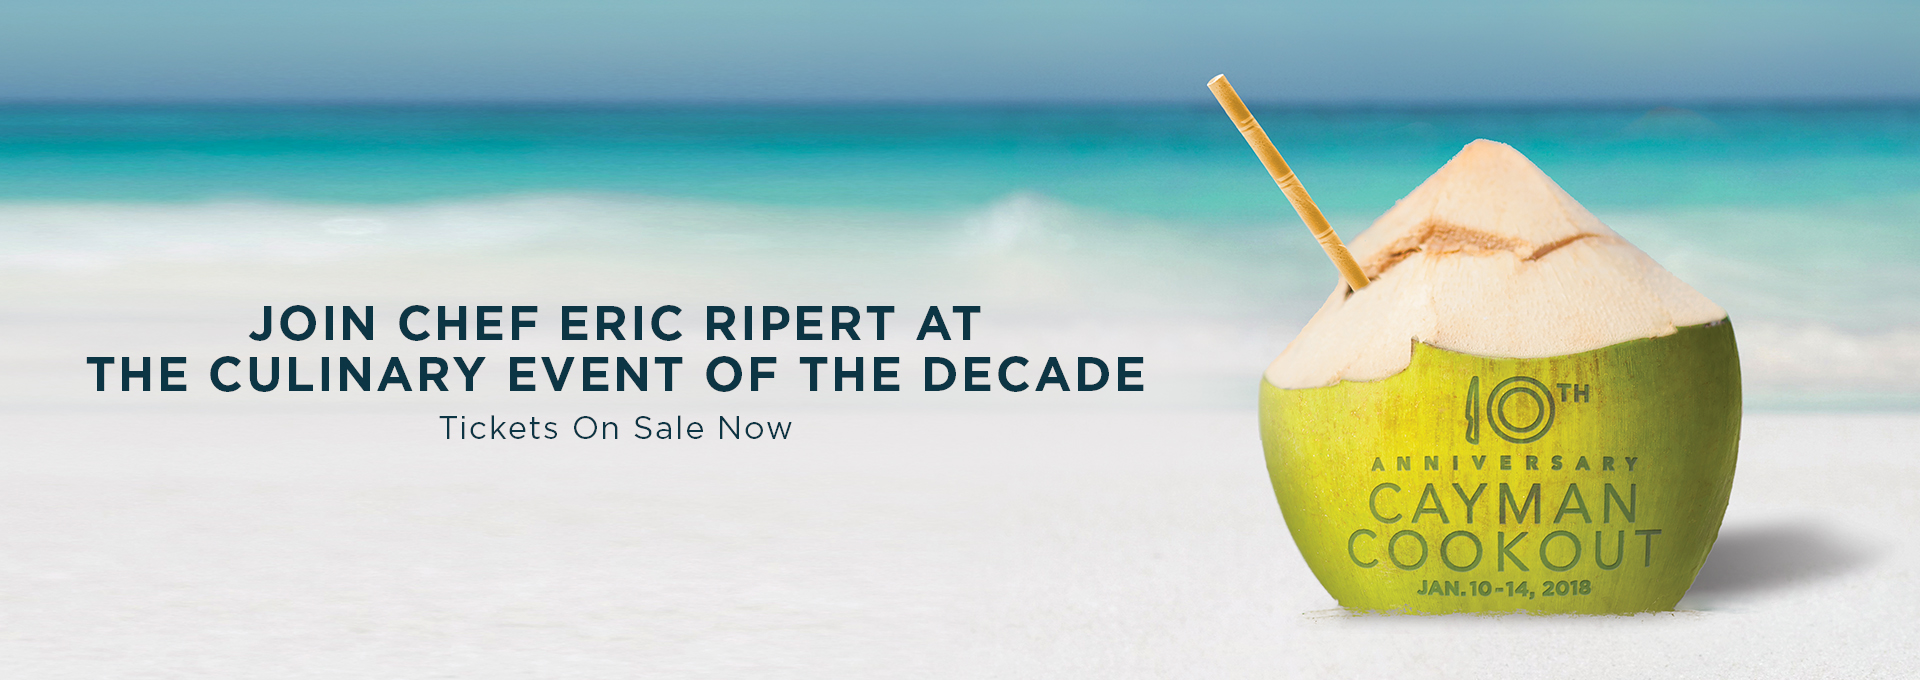 Join chef Eric Ripert at the culinary event of the decade